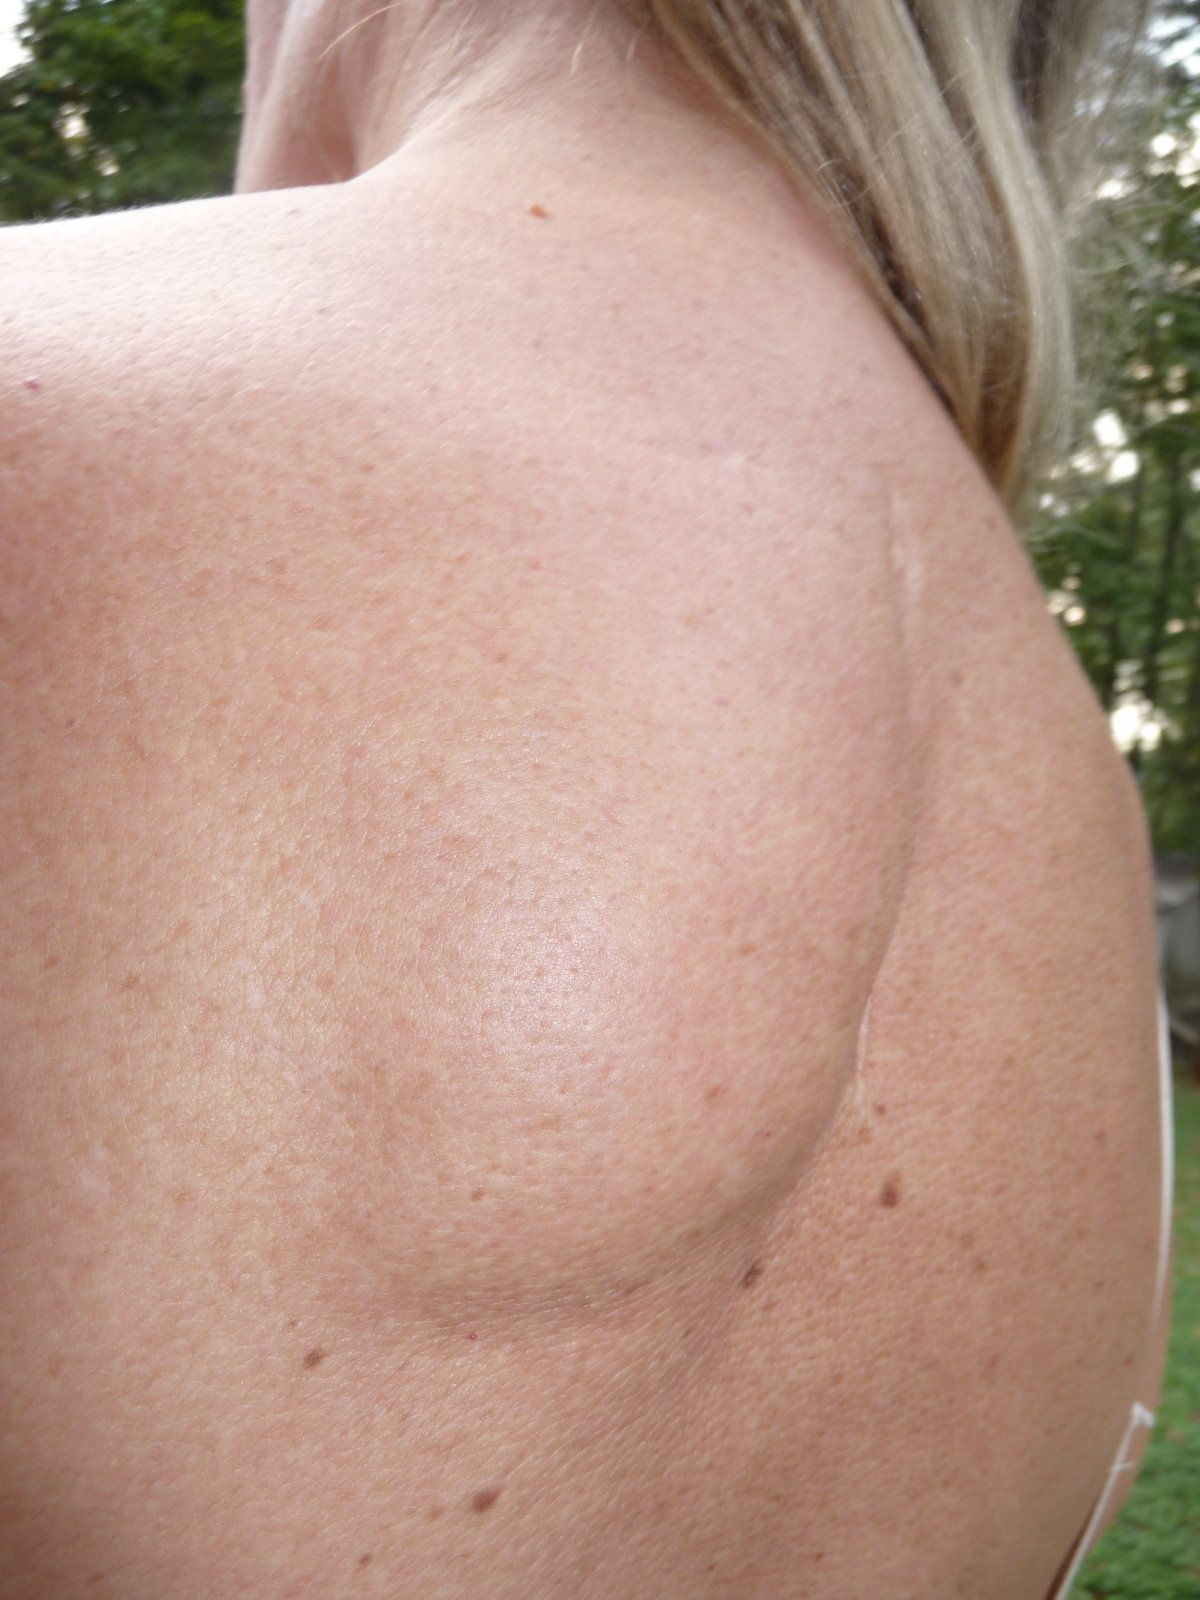 Lipoma on the back. How to get rid 19